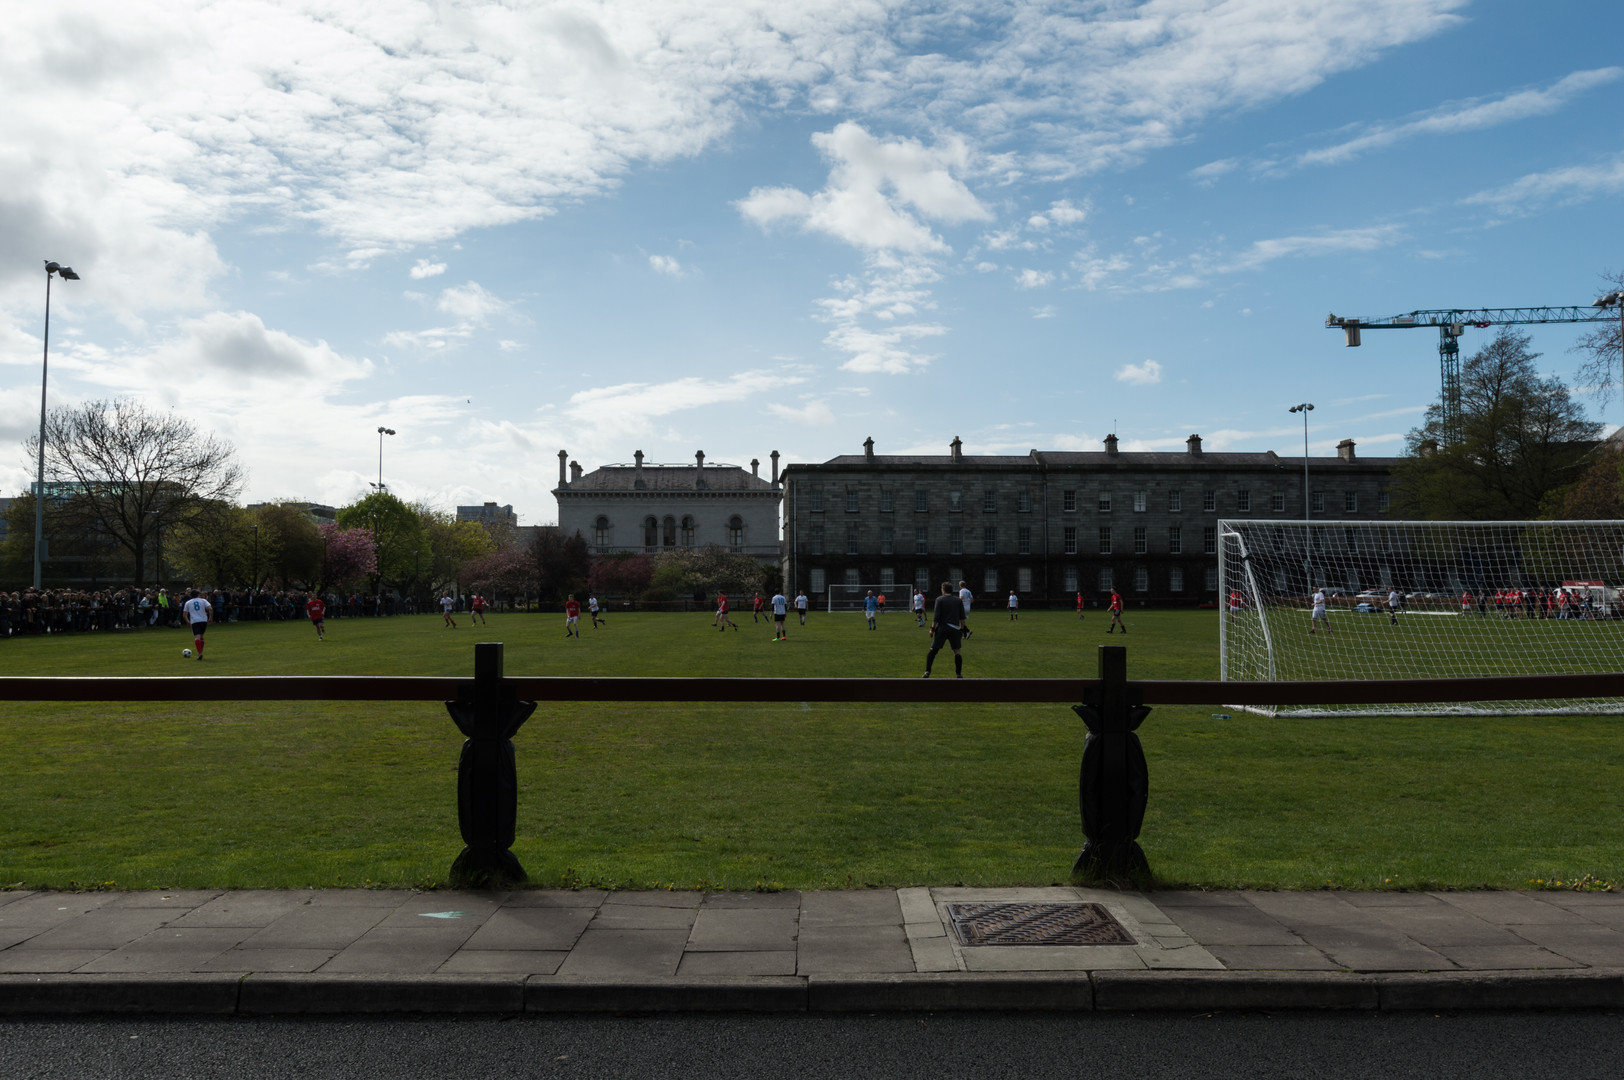 A game of soccer taking place on a pitch at Trintiy College, Dublin